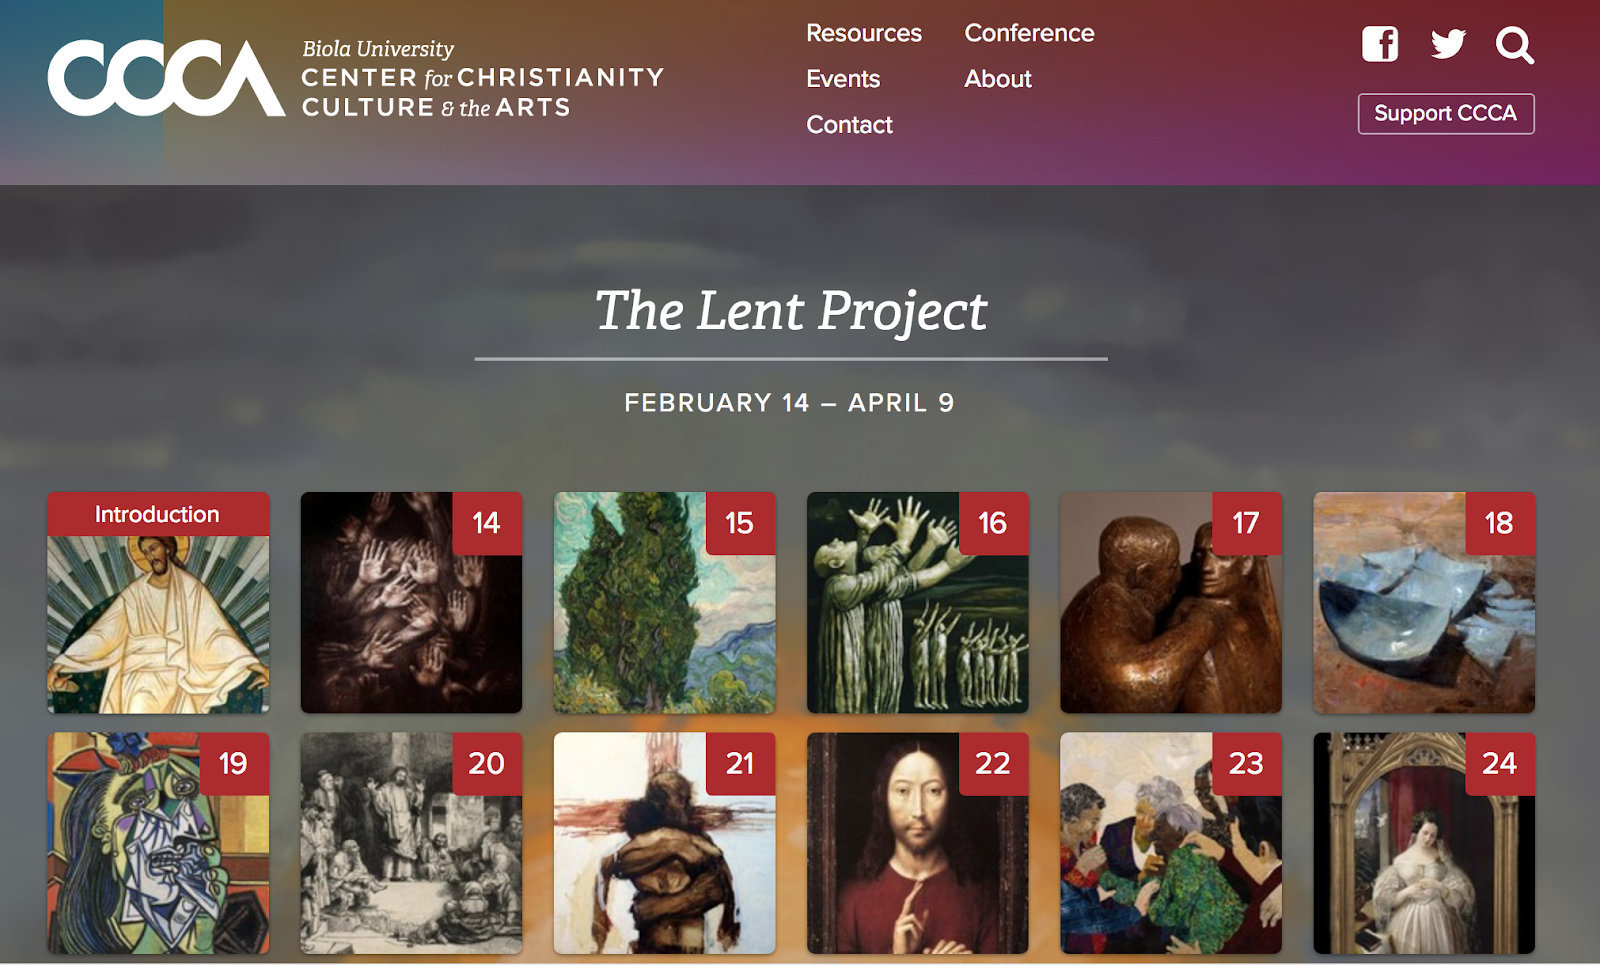 Screenshot of Biola's Lent Project